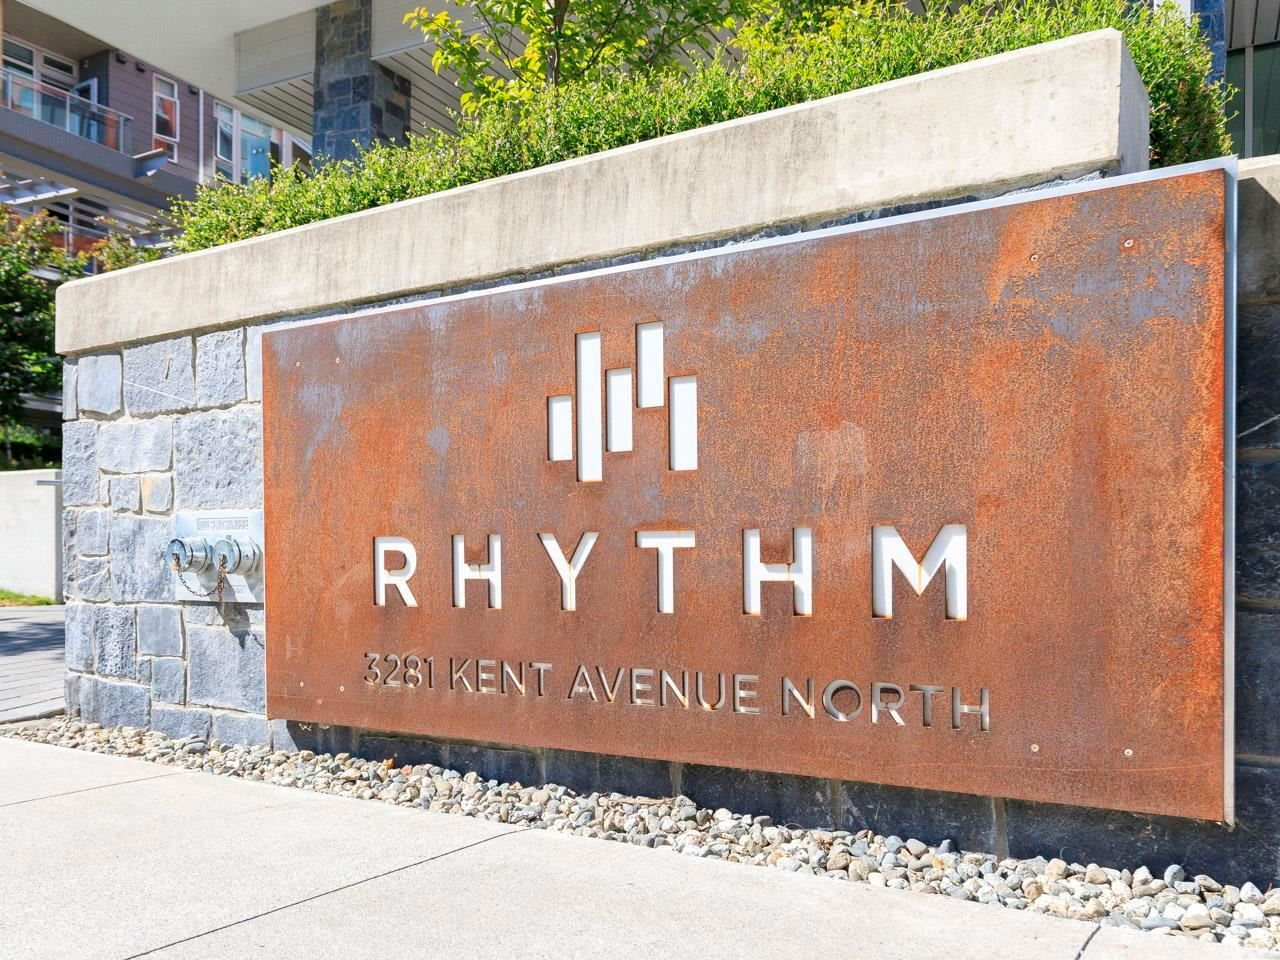 """Main Photo: 506 3281 E KENT AVENUE NORTH in Vancouver: South Marine Condo for sale in """"RHYTHM"""" (Vancouver East)  : MLS®# R2601108"""